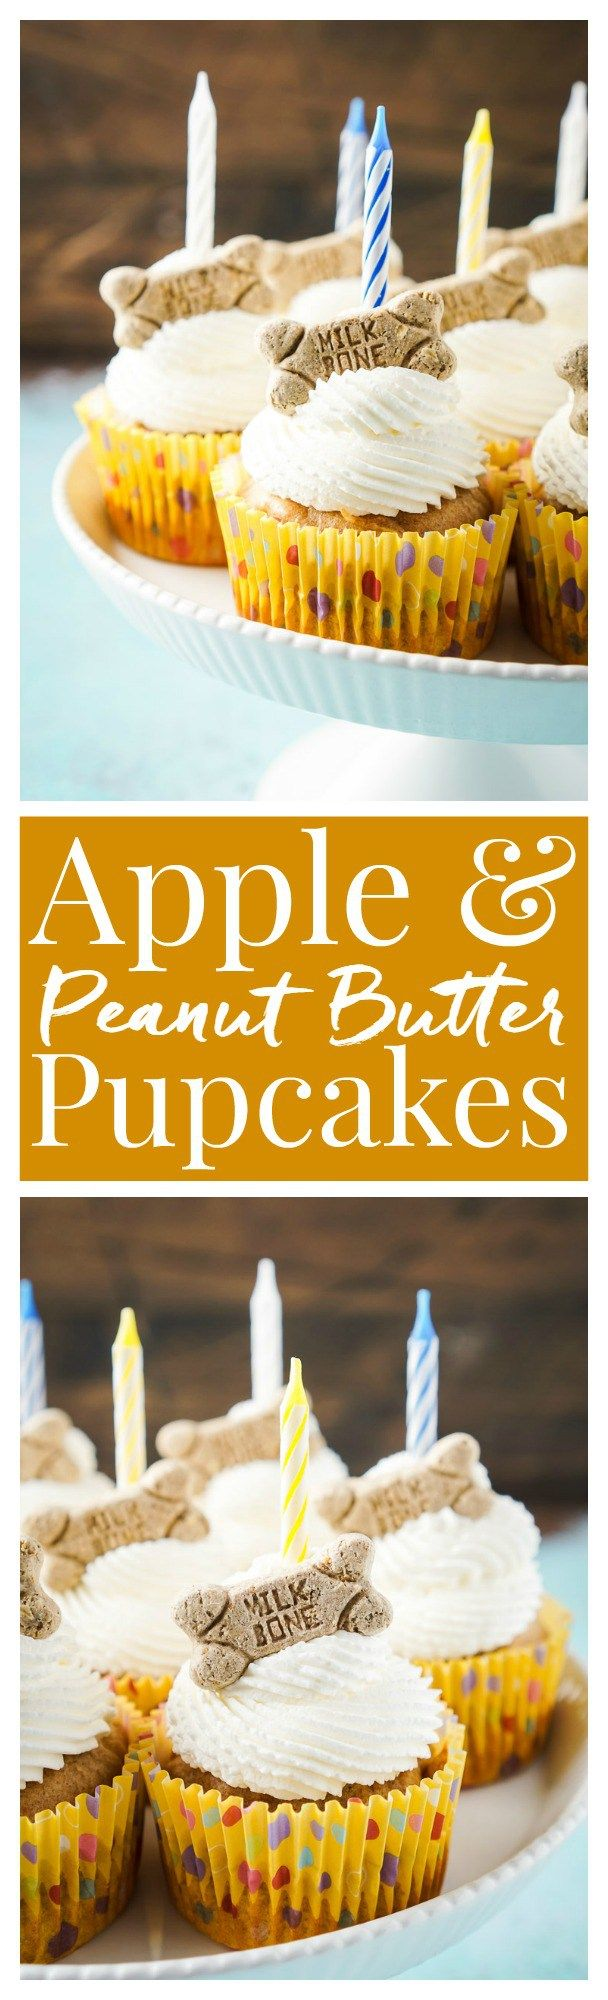 These Apple Peanut Butter Pupcakes are a great homemade treat